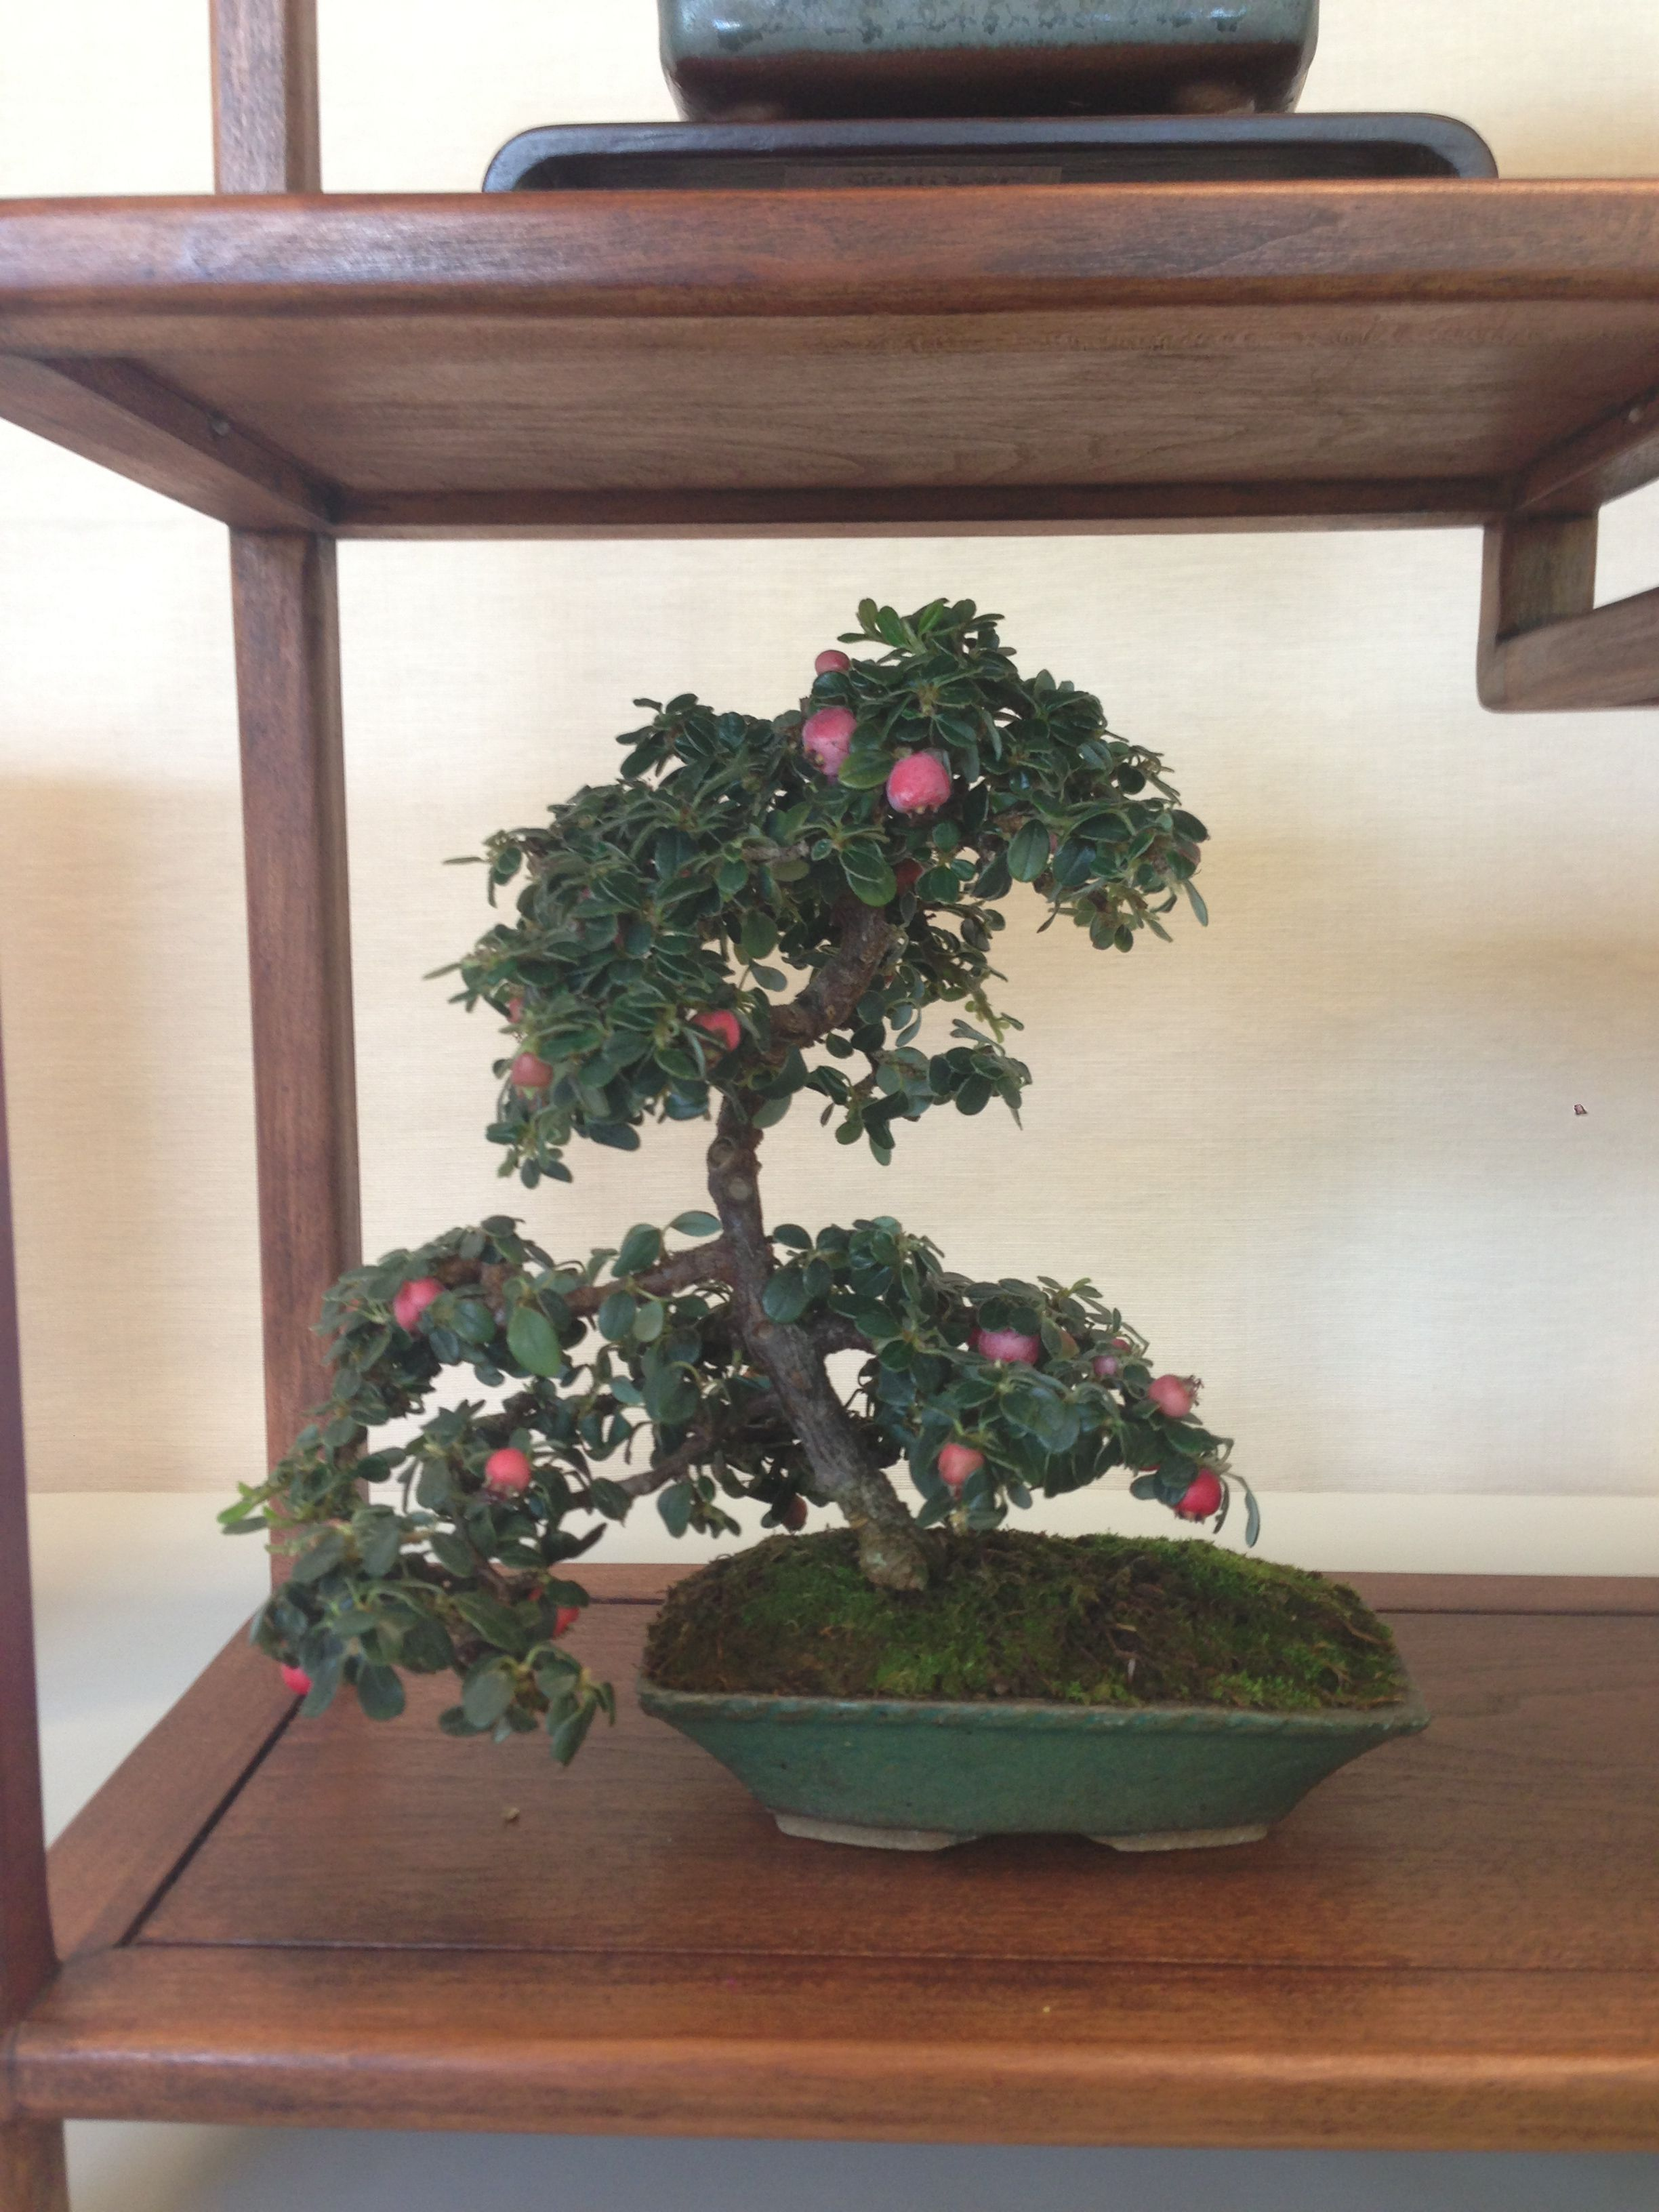 Cotoneaster Bonsai From The Ann Arbor Bonsai Society Show 2013 In Michigan 5 Year Old Cotoneaster Bonsai Bonsai Fruit Tree Bonsai Art